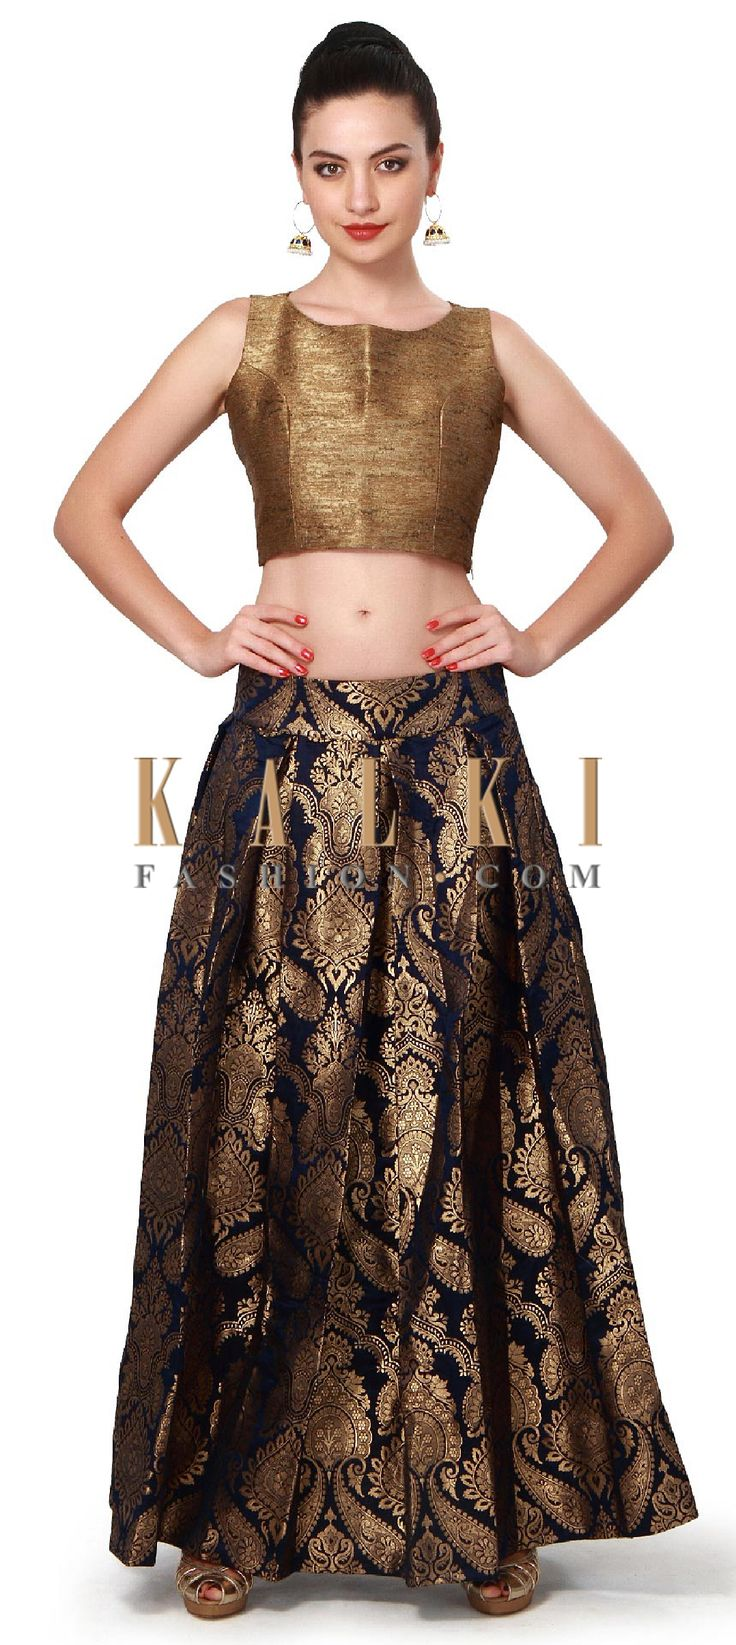 Buy Online from the link below. We ship worldwide (Free Shipping over US$100). Product SKU - 317306. Product Price - $279.00. Product Link - http://www.kalkifashion.com/navy-blue-skirt-matched-with-gold-crop-top-only-on-kalki.html